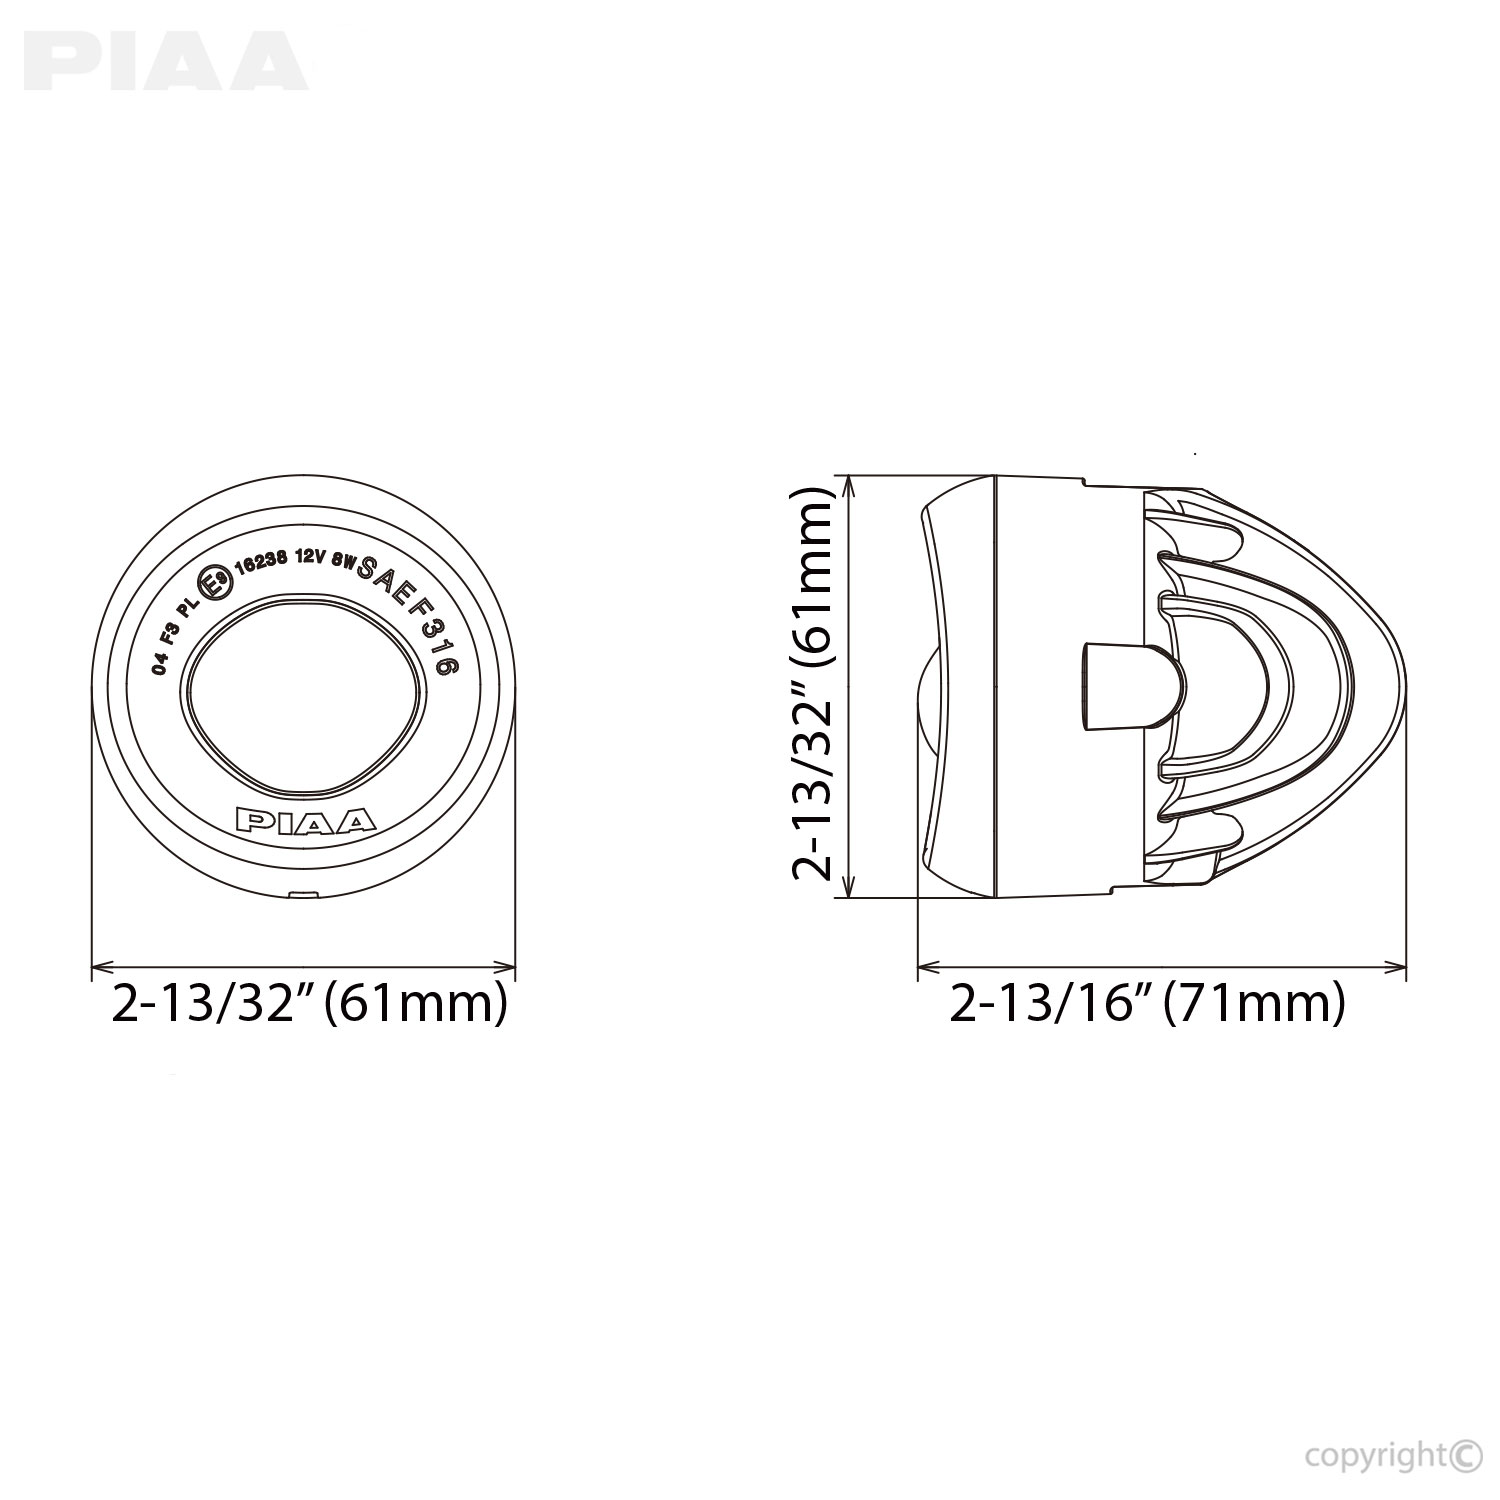 hight resolution of piaa led lights for bmw motorcyclesbmw 1100p 2 40